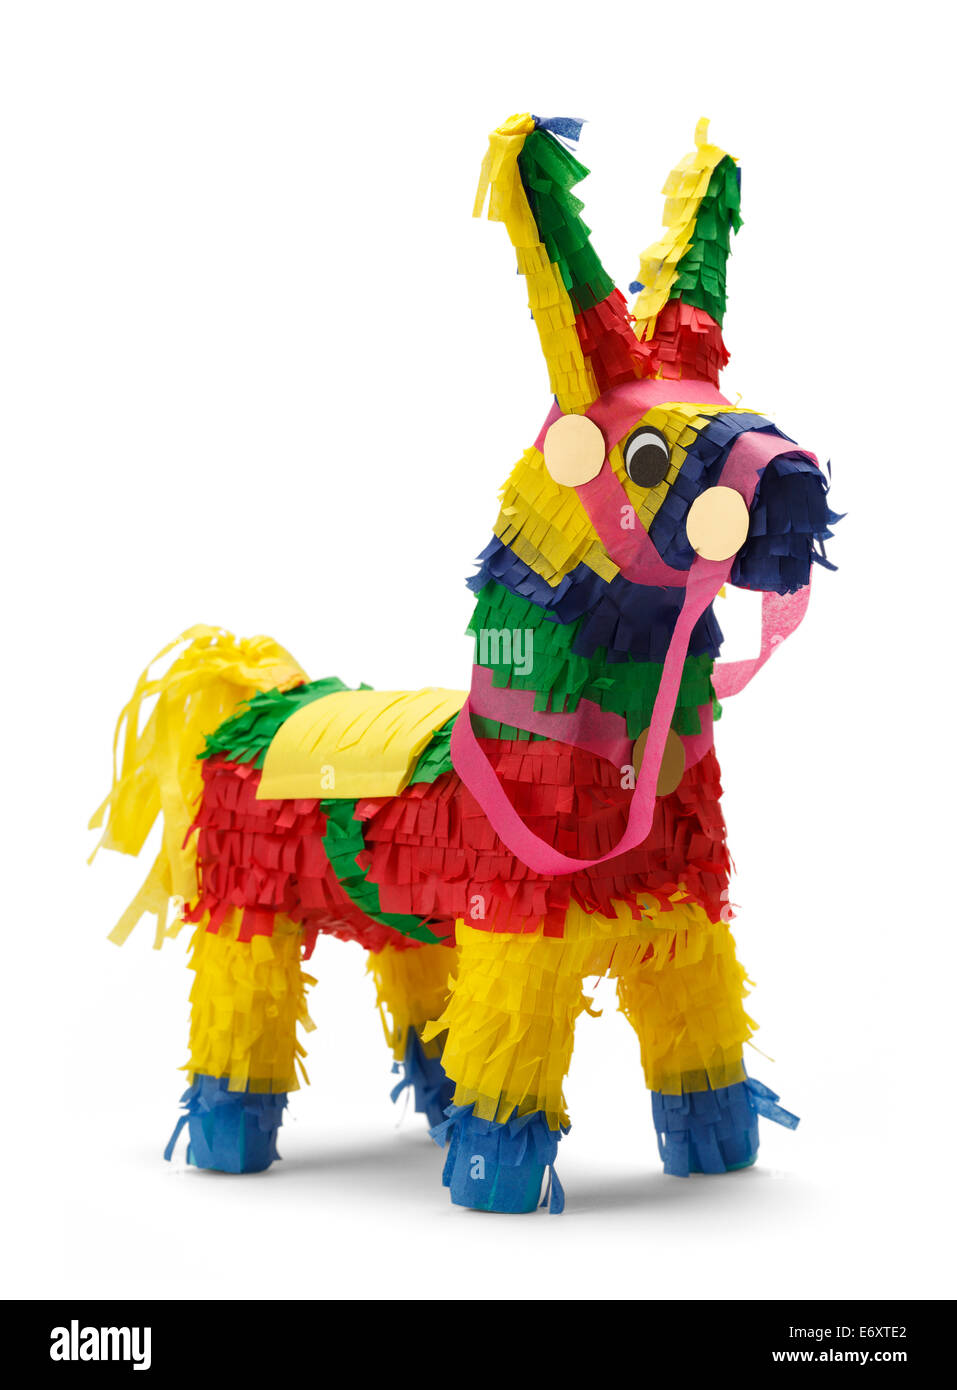 How to Make a Donkey Pinata | Mexican party theme, Mexican pinata ... | 1390x957